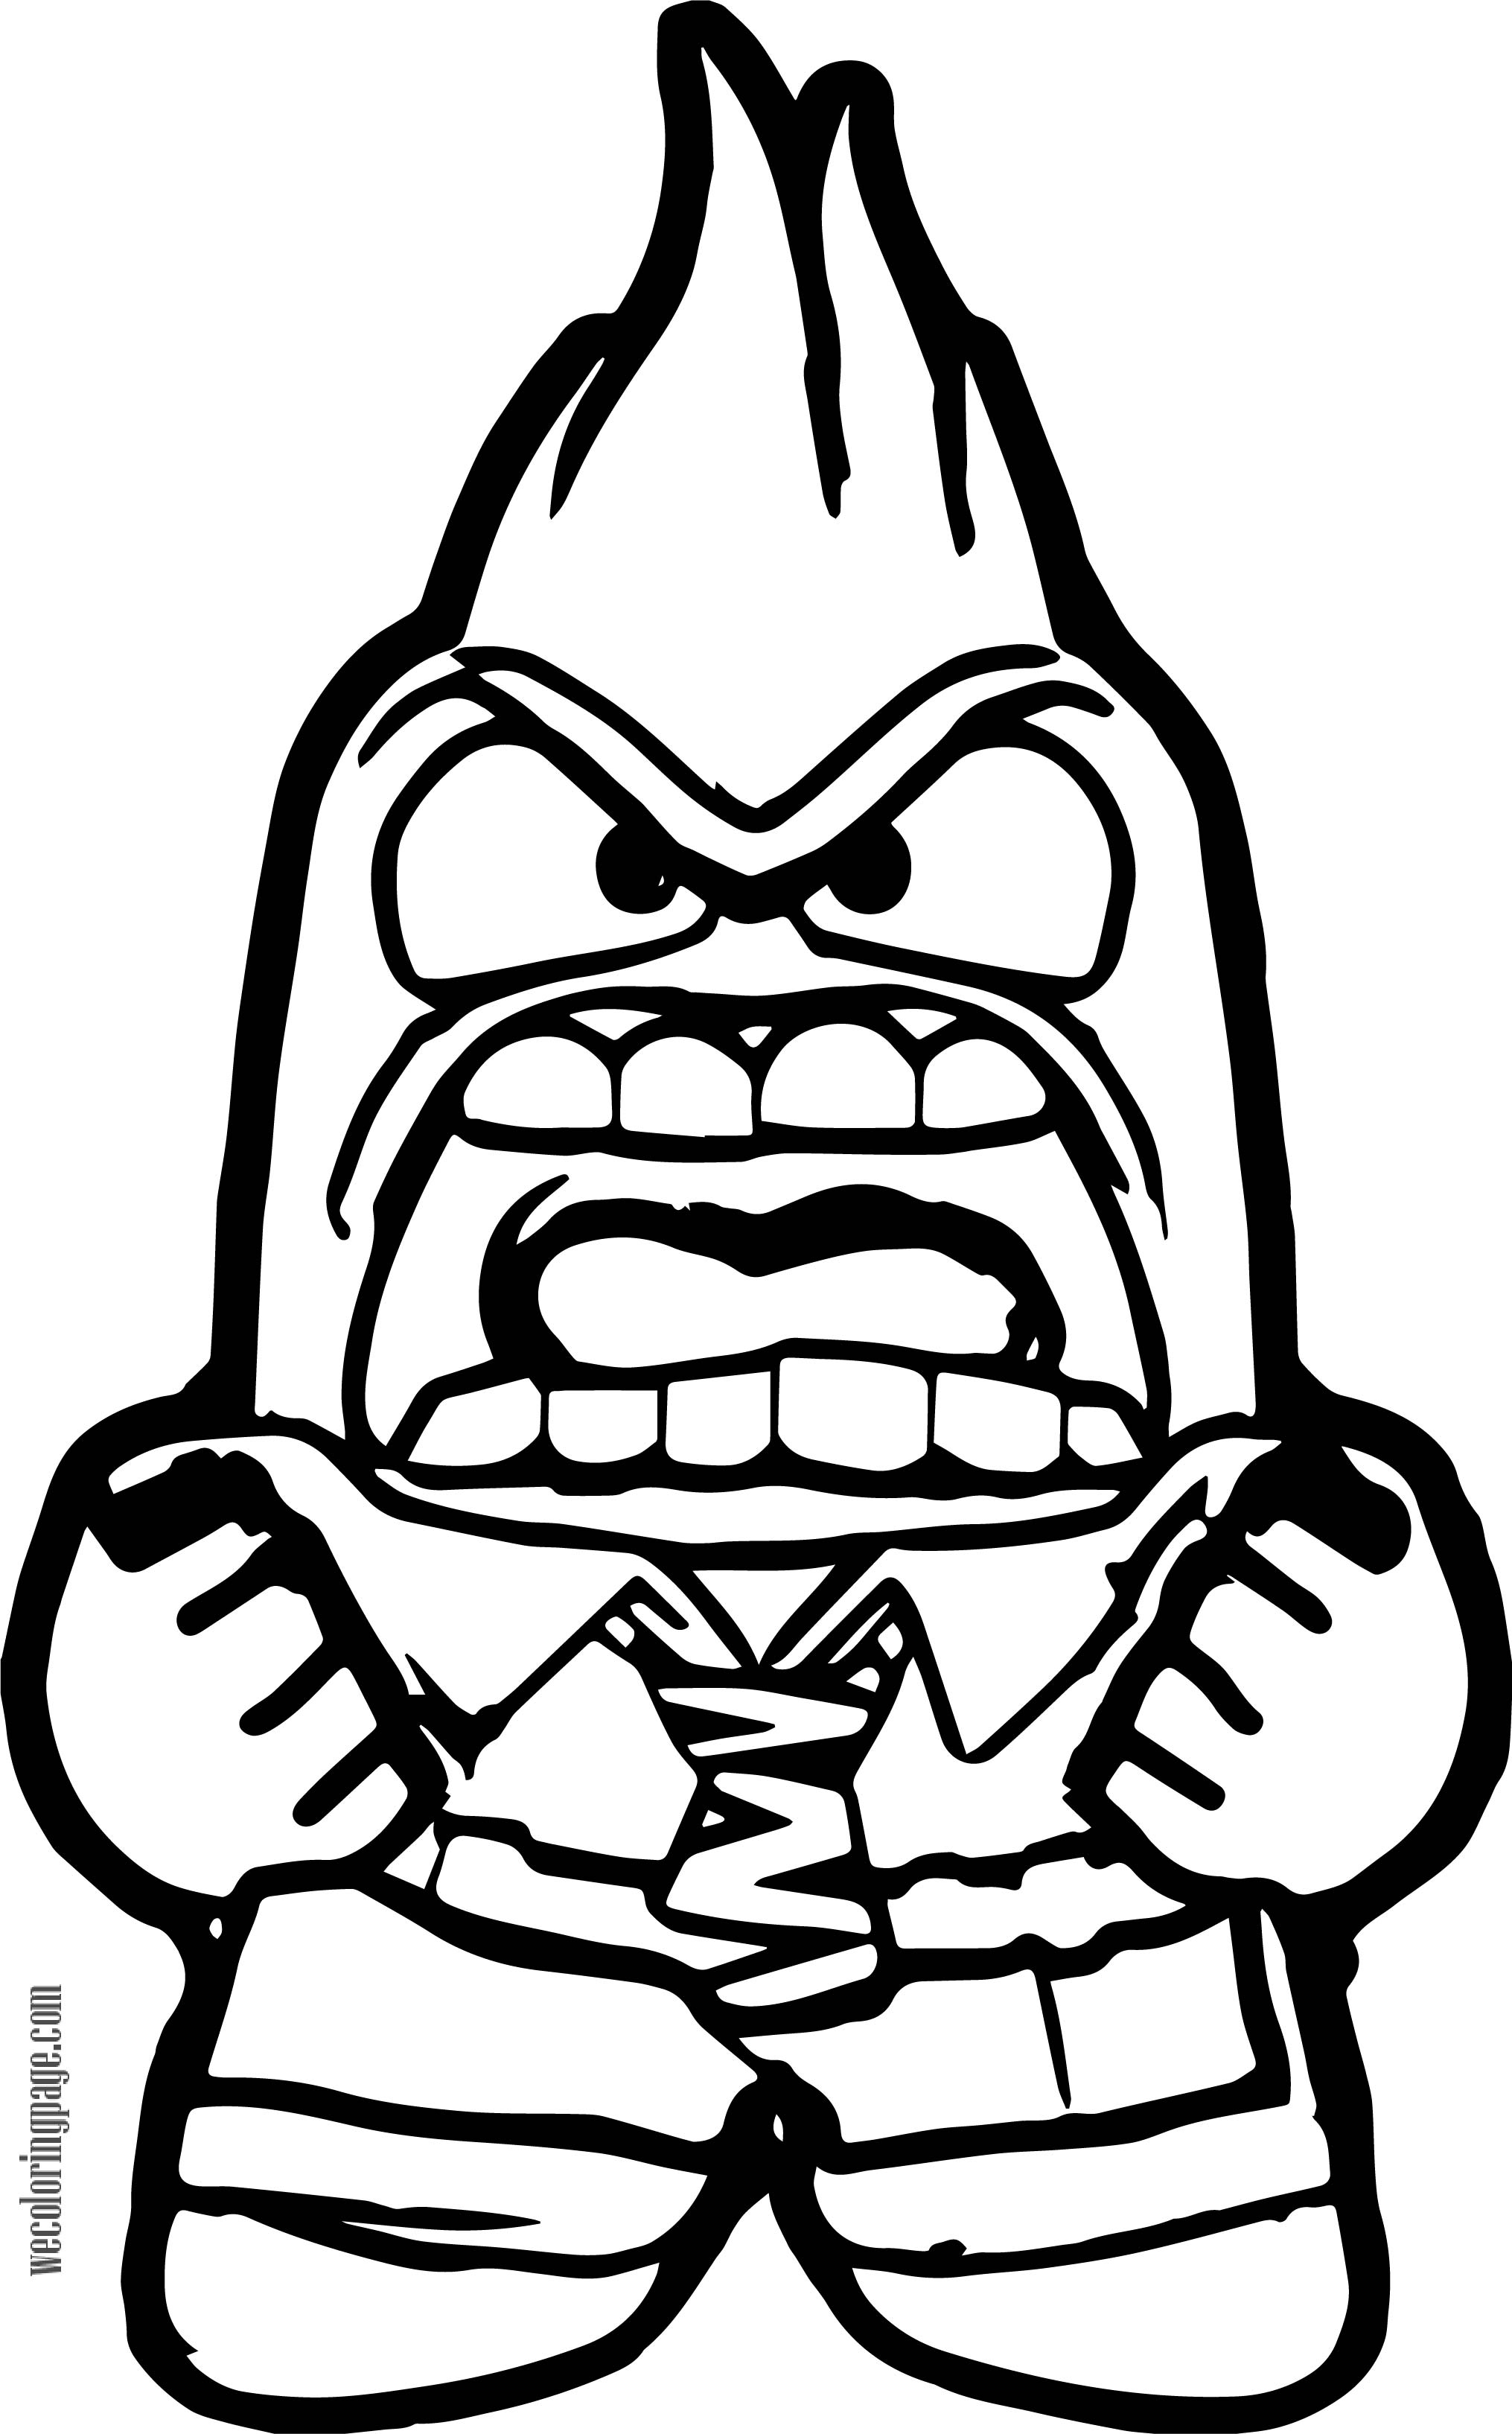 Anger On Fire Coloring Page Free Inside Out Sketch